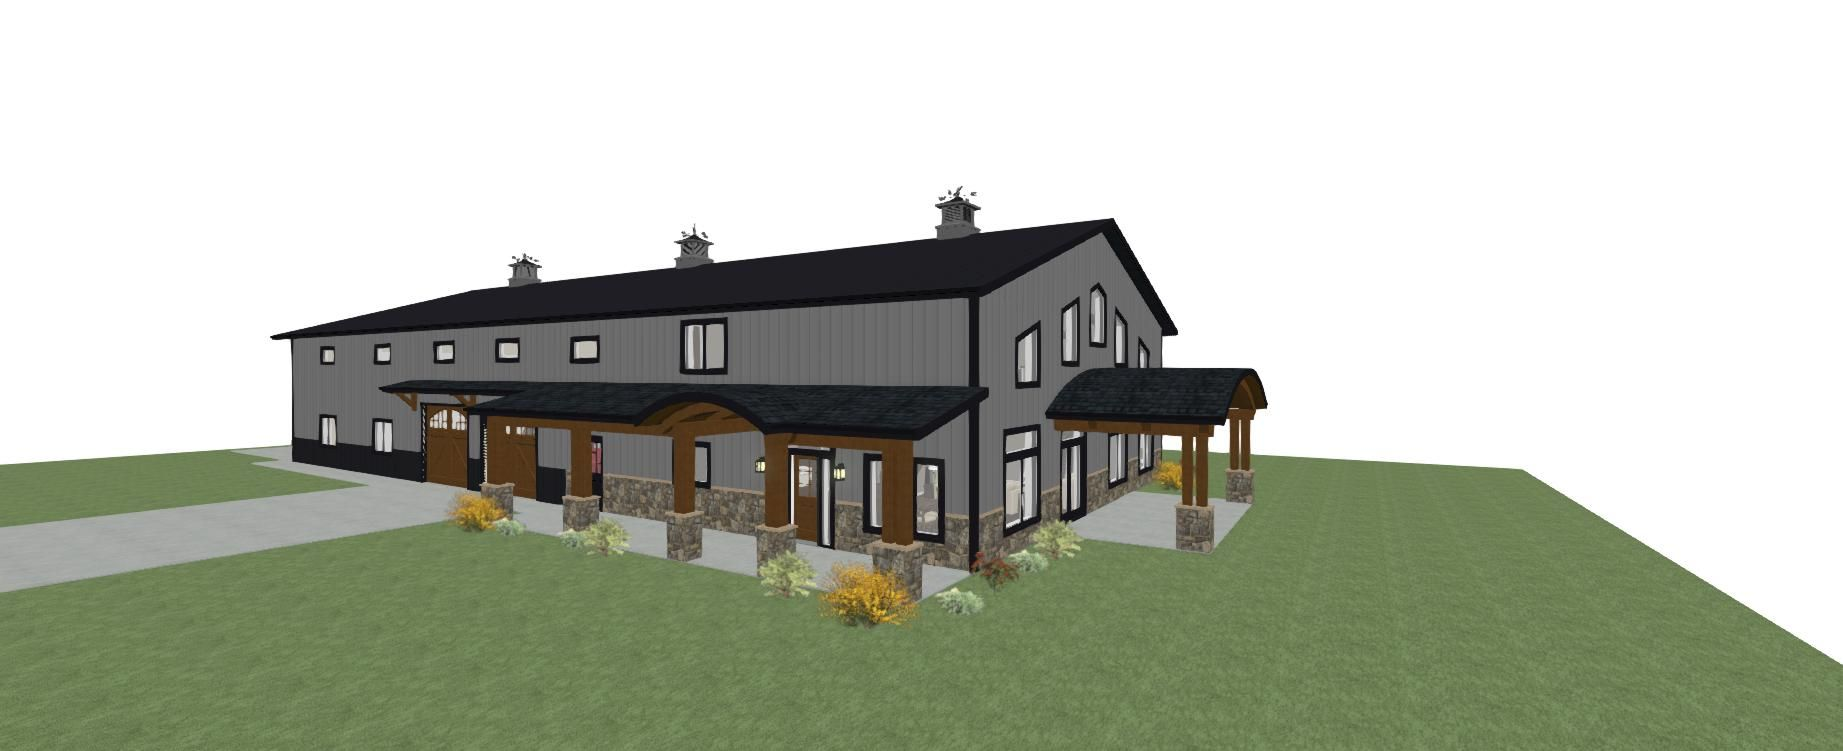 3 D Exterior Of Shouse With Dark Grey Siding Dark Grey Roof And Rounded Arches Pole Barn House Plans Barn House Plans Shed Homes